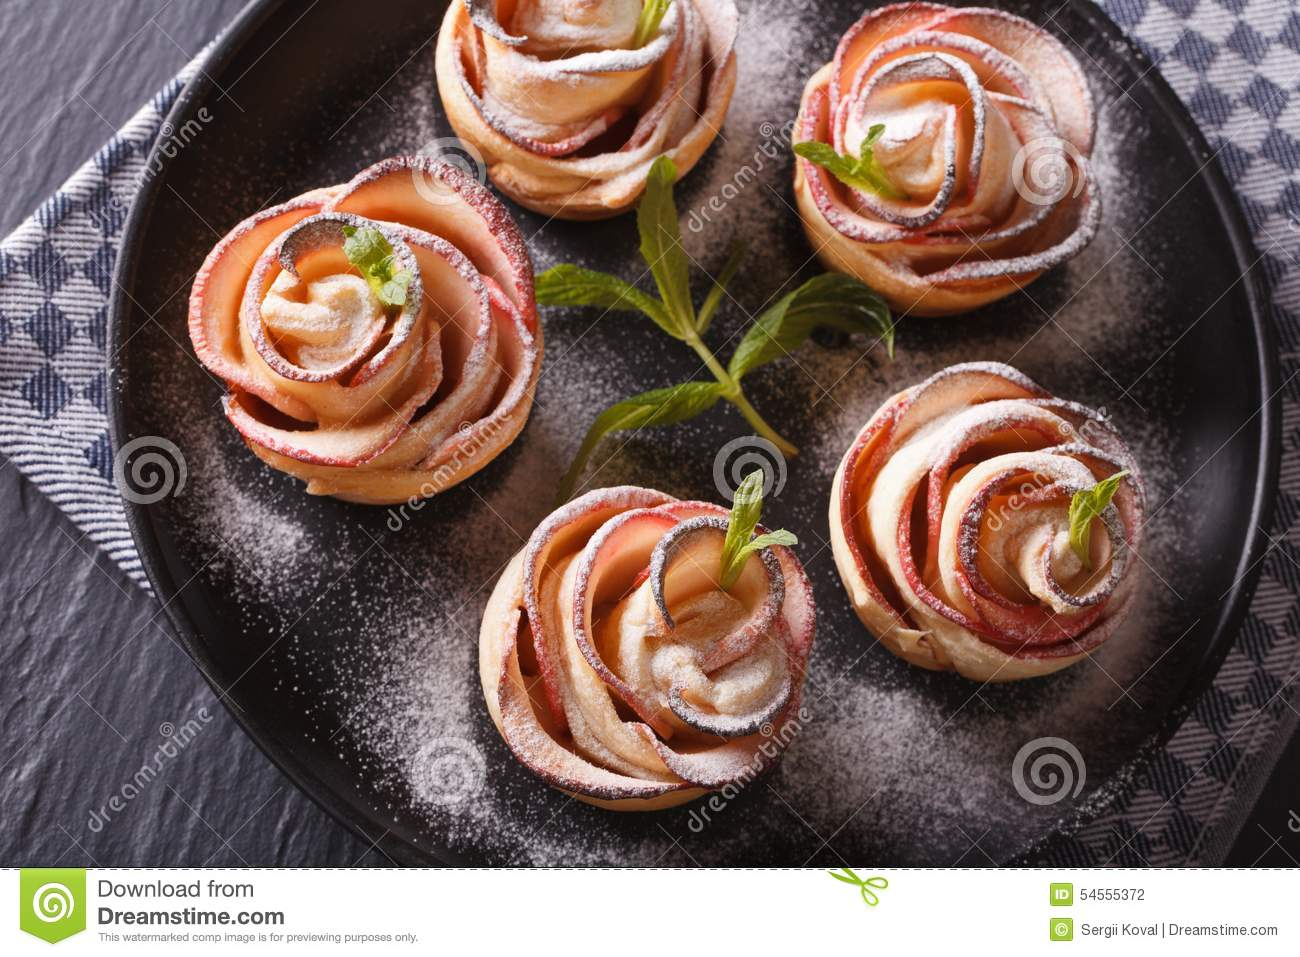 Download Beautiful Food: Rose Out Of An Apple Horizontal Top View Stock Photo - Image of cake, autumn: 54555372